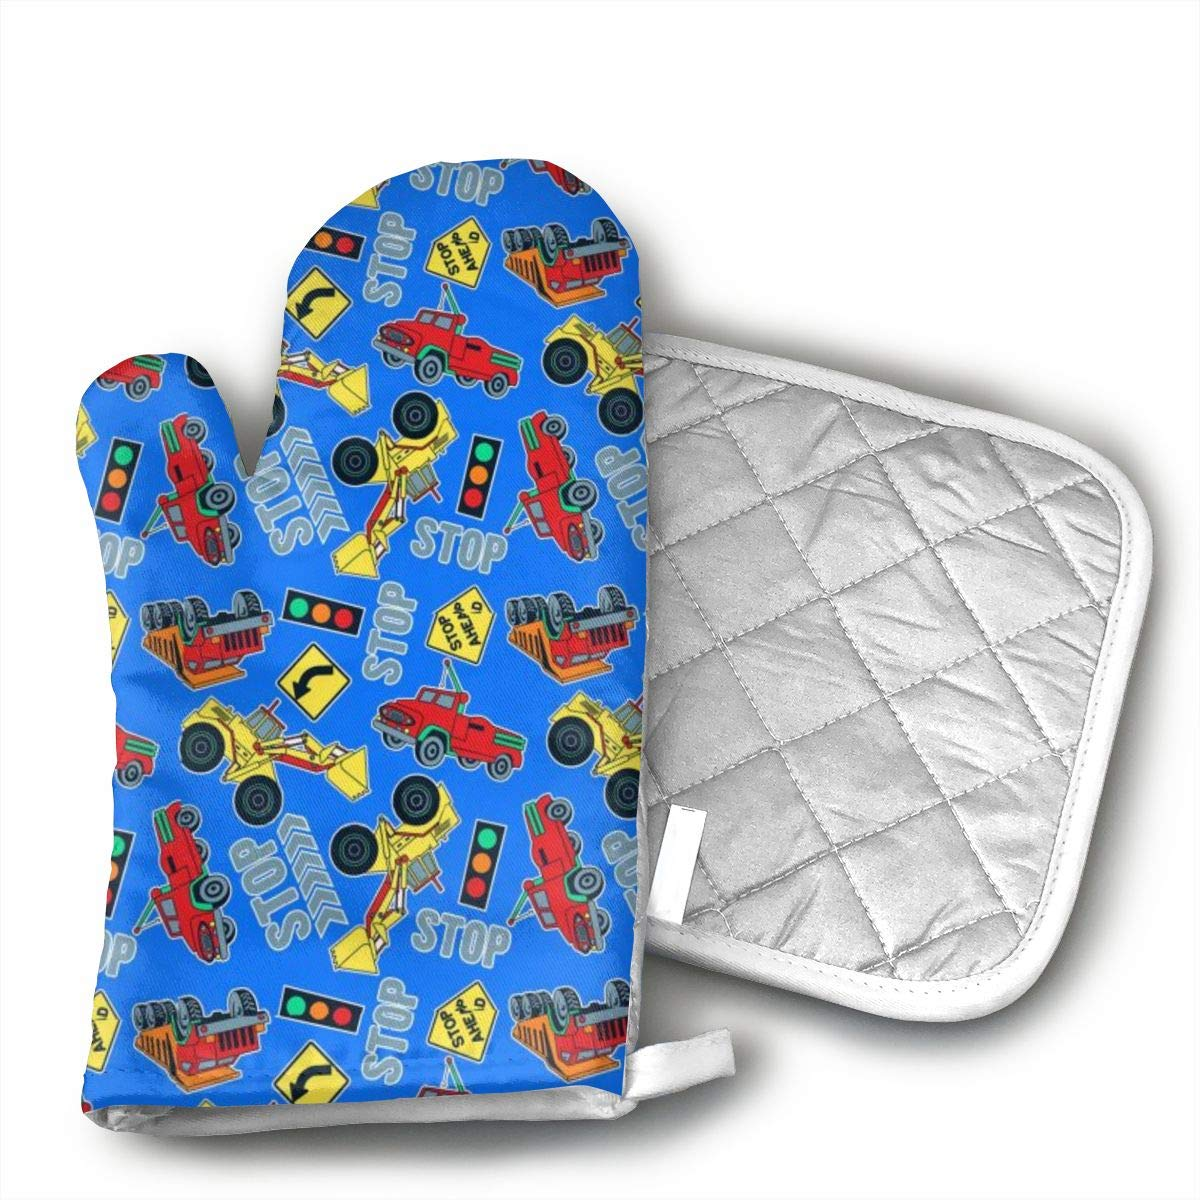 Trucks Tractors Blue Oven Mitts & Heat Resistant Pot Holder - with Polyester Cotton Non-Slip Grip, Best Used As Baking, Grilling, BBQ, Cooking, Kitchen Or Oven Gloves